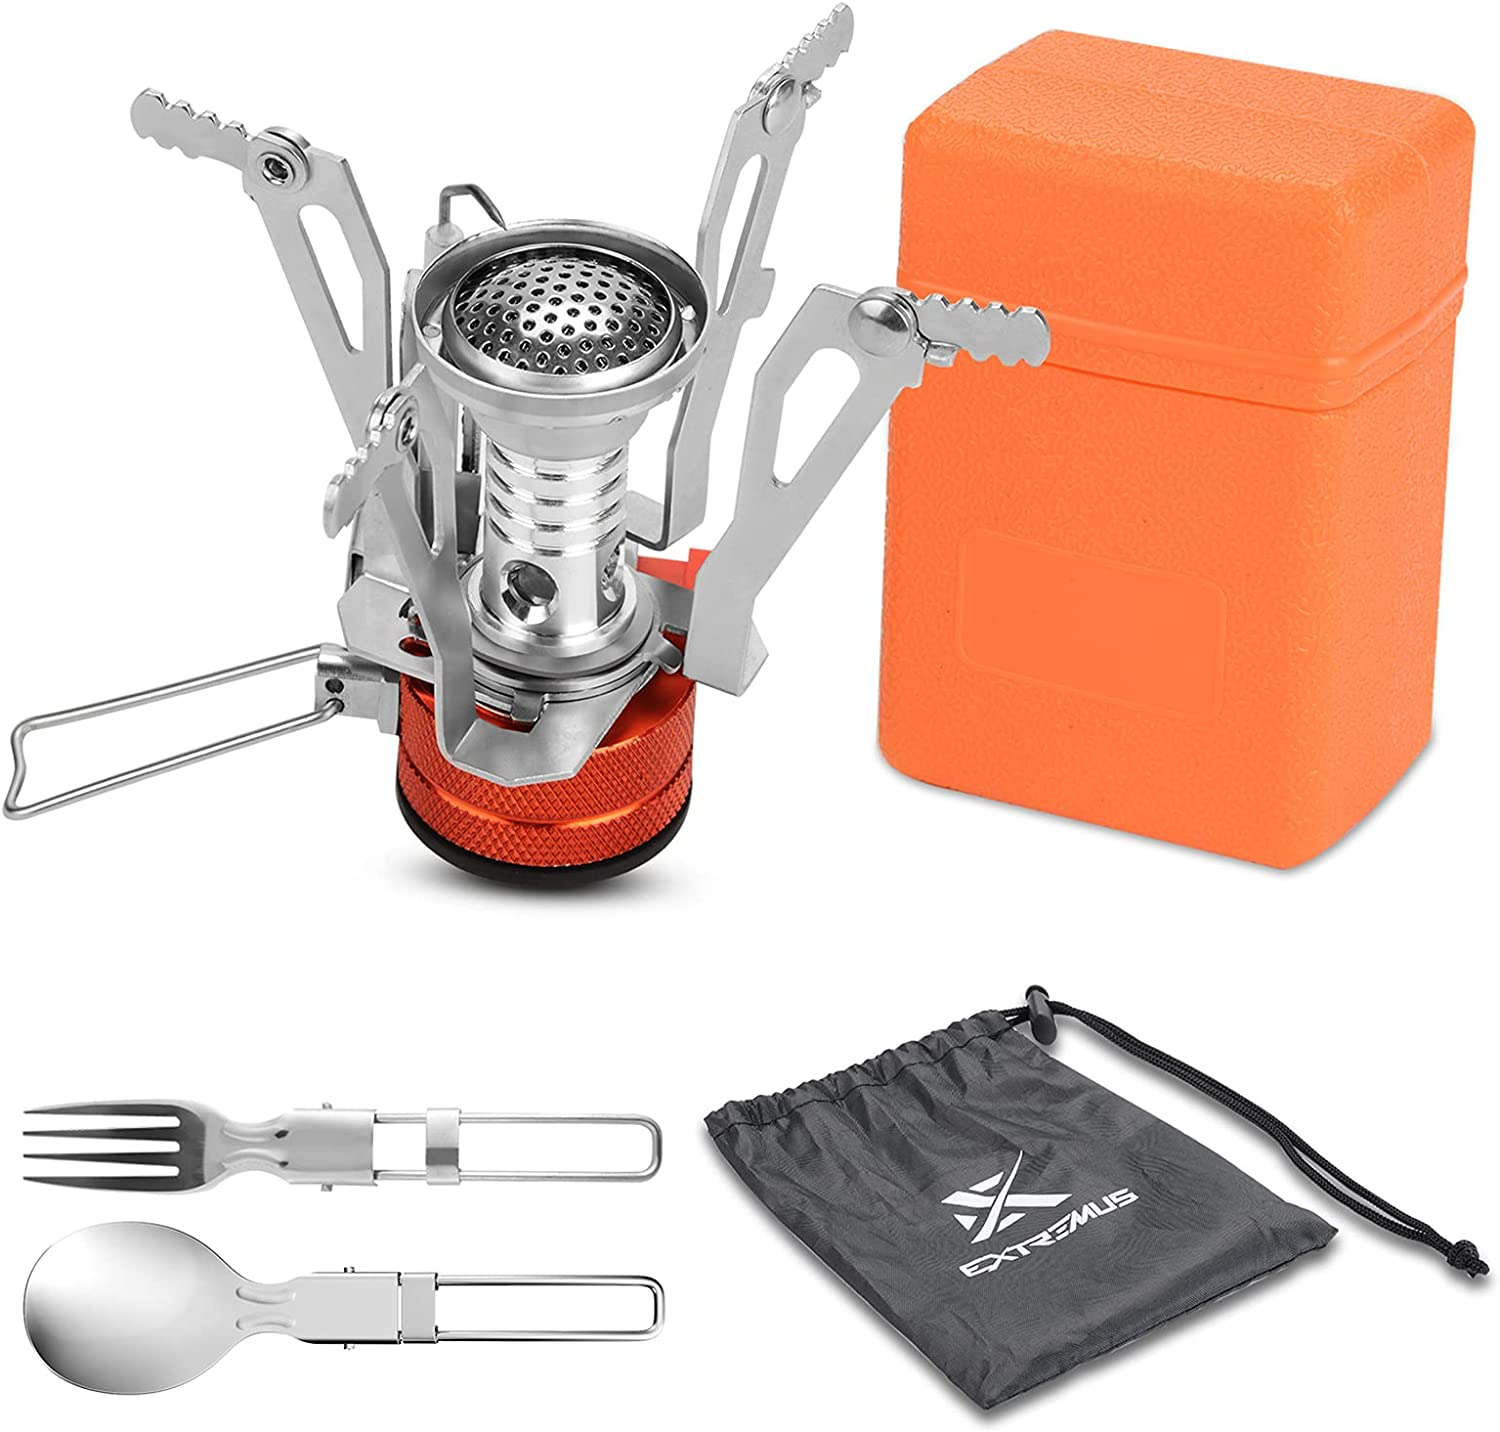 Extremus Portable Camp Stove, Compact Wind Resistant Camping Stove for Backpacking, Hiking, Camping, and Tailgating, Ultralight